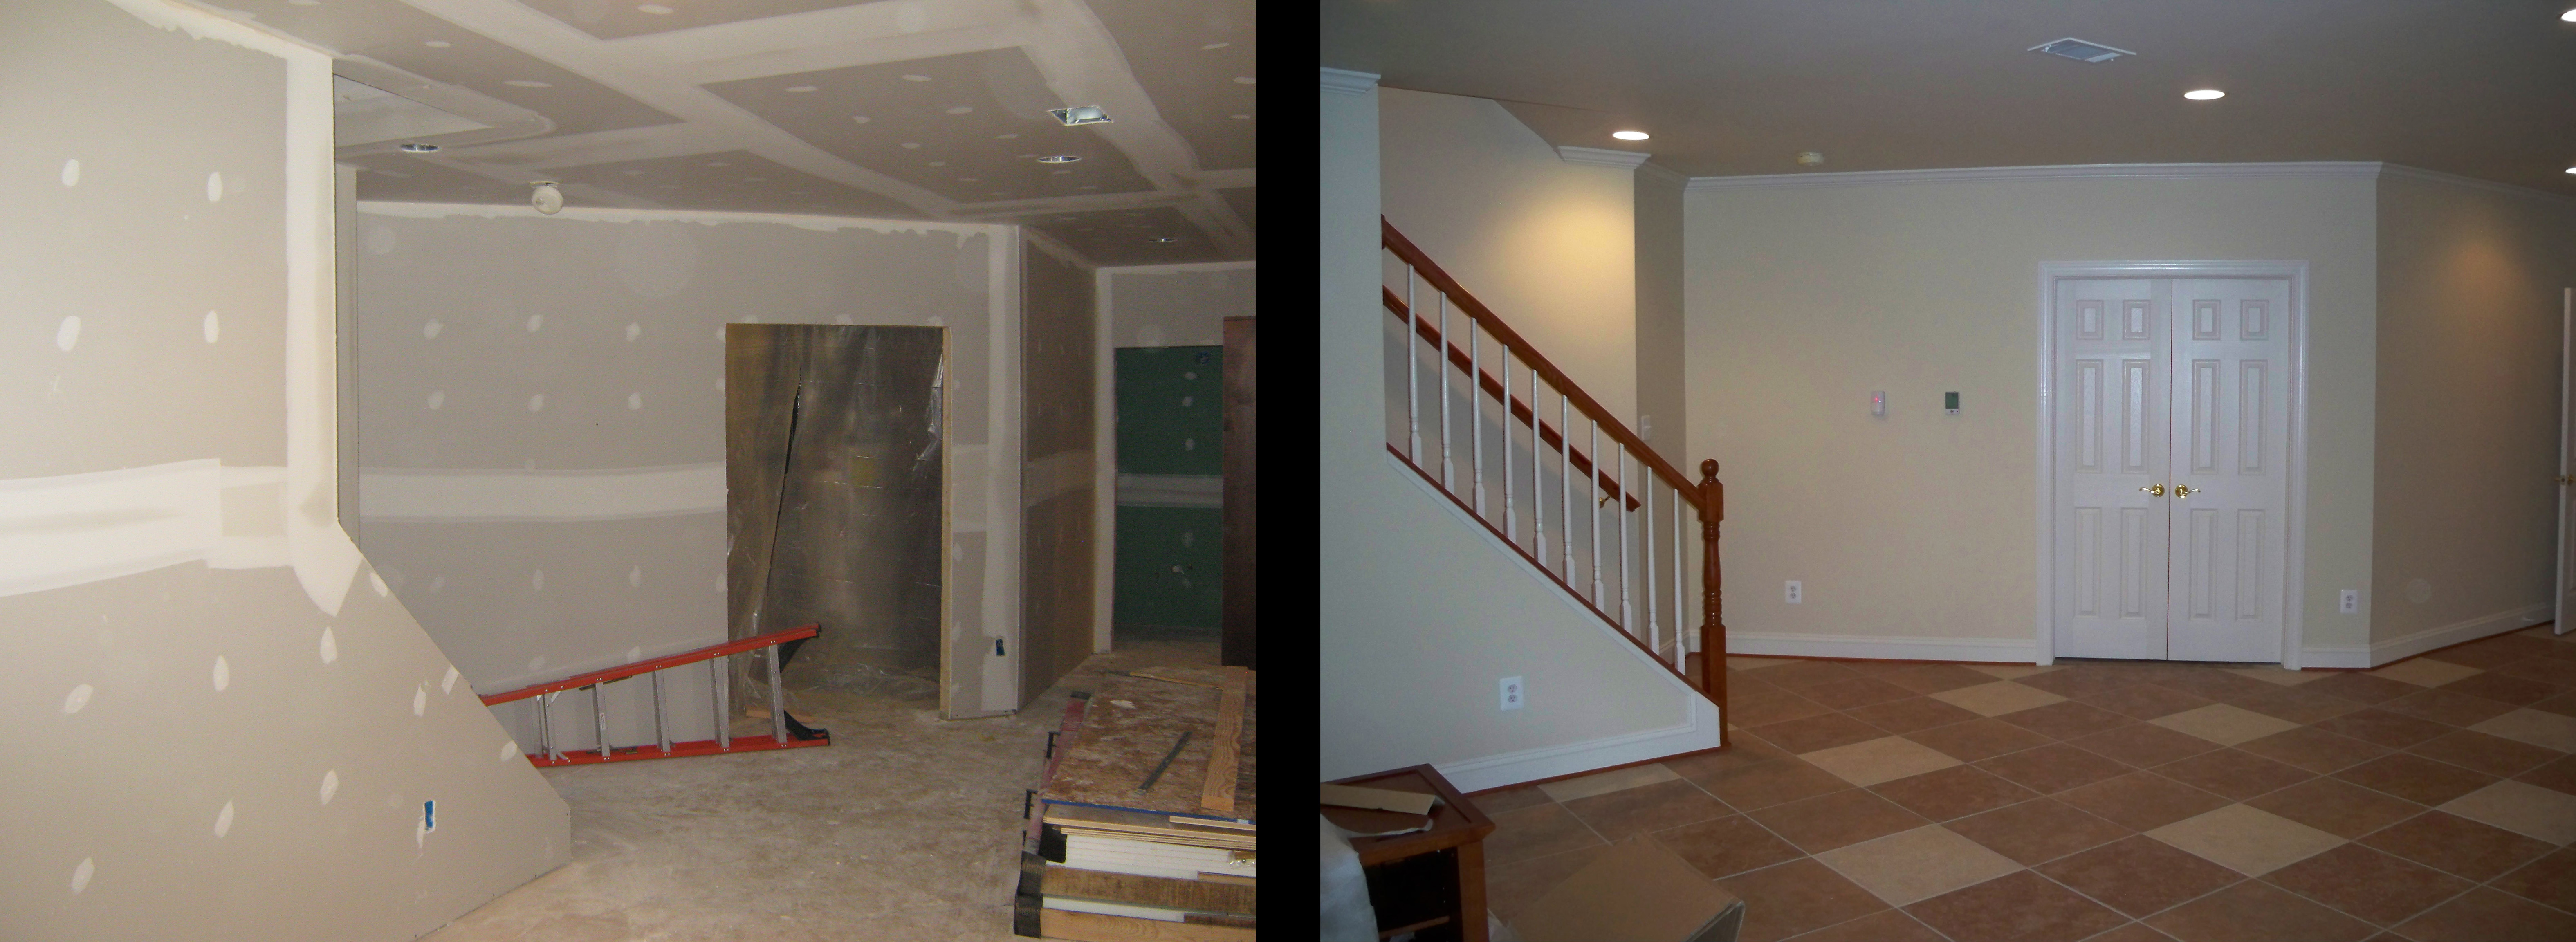 interior before and after 3